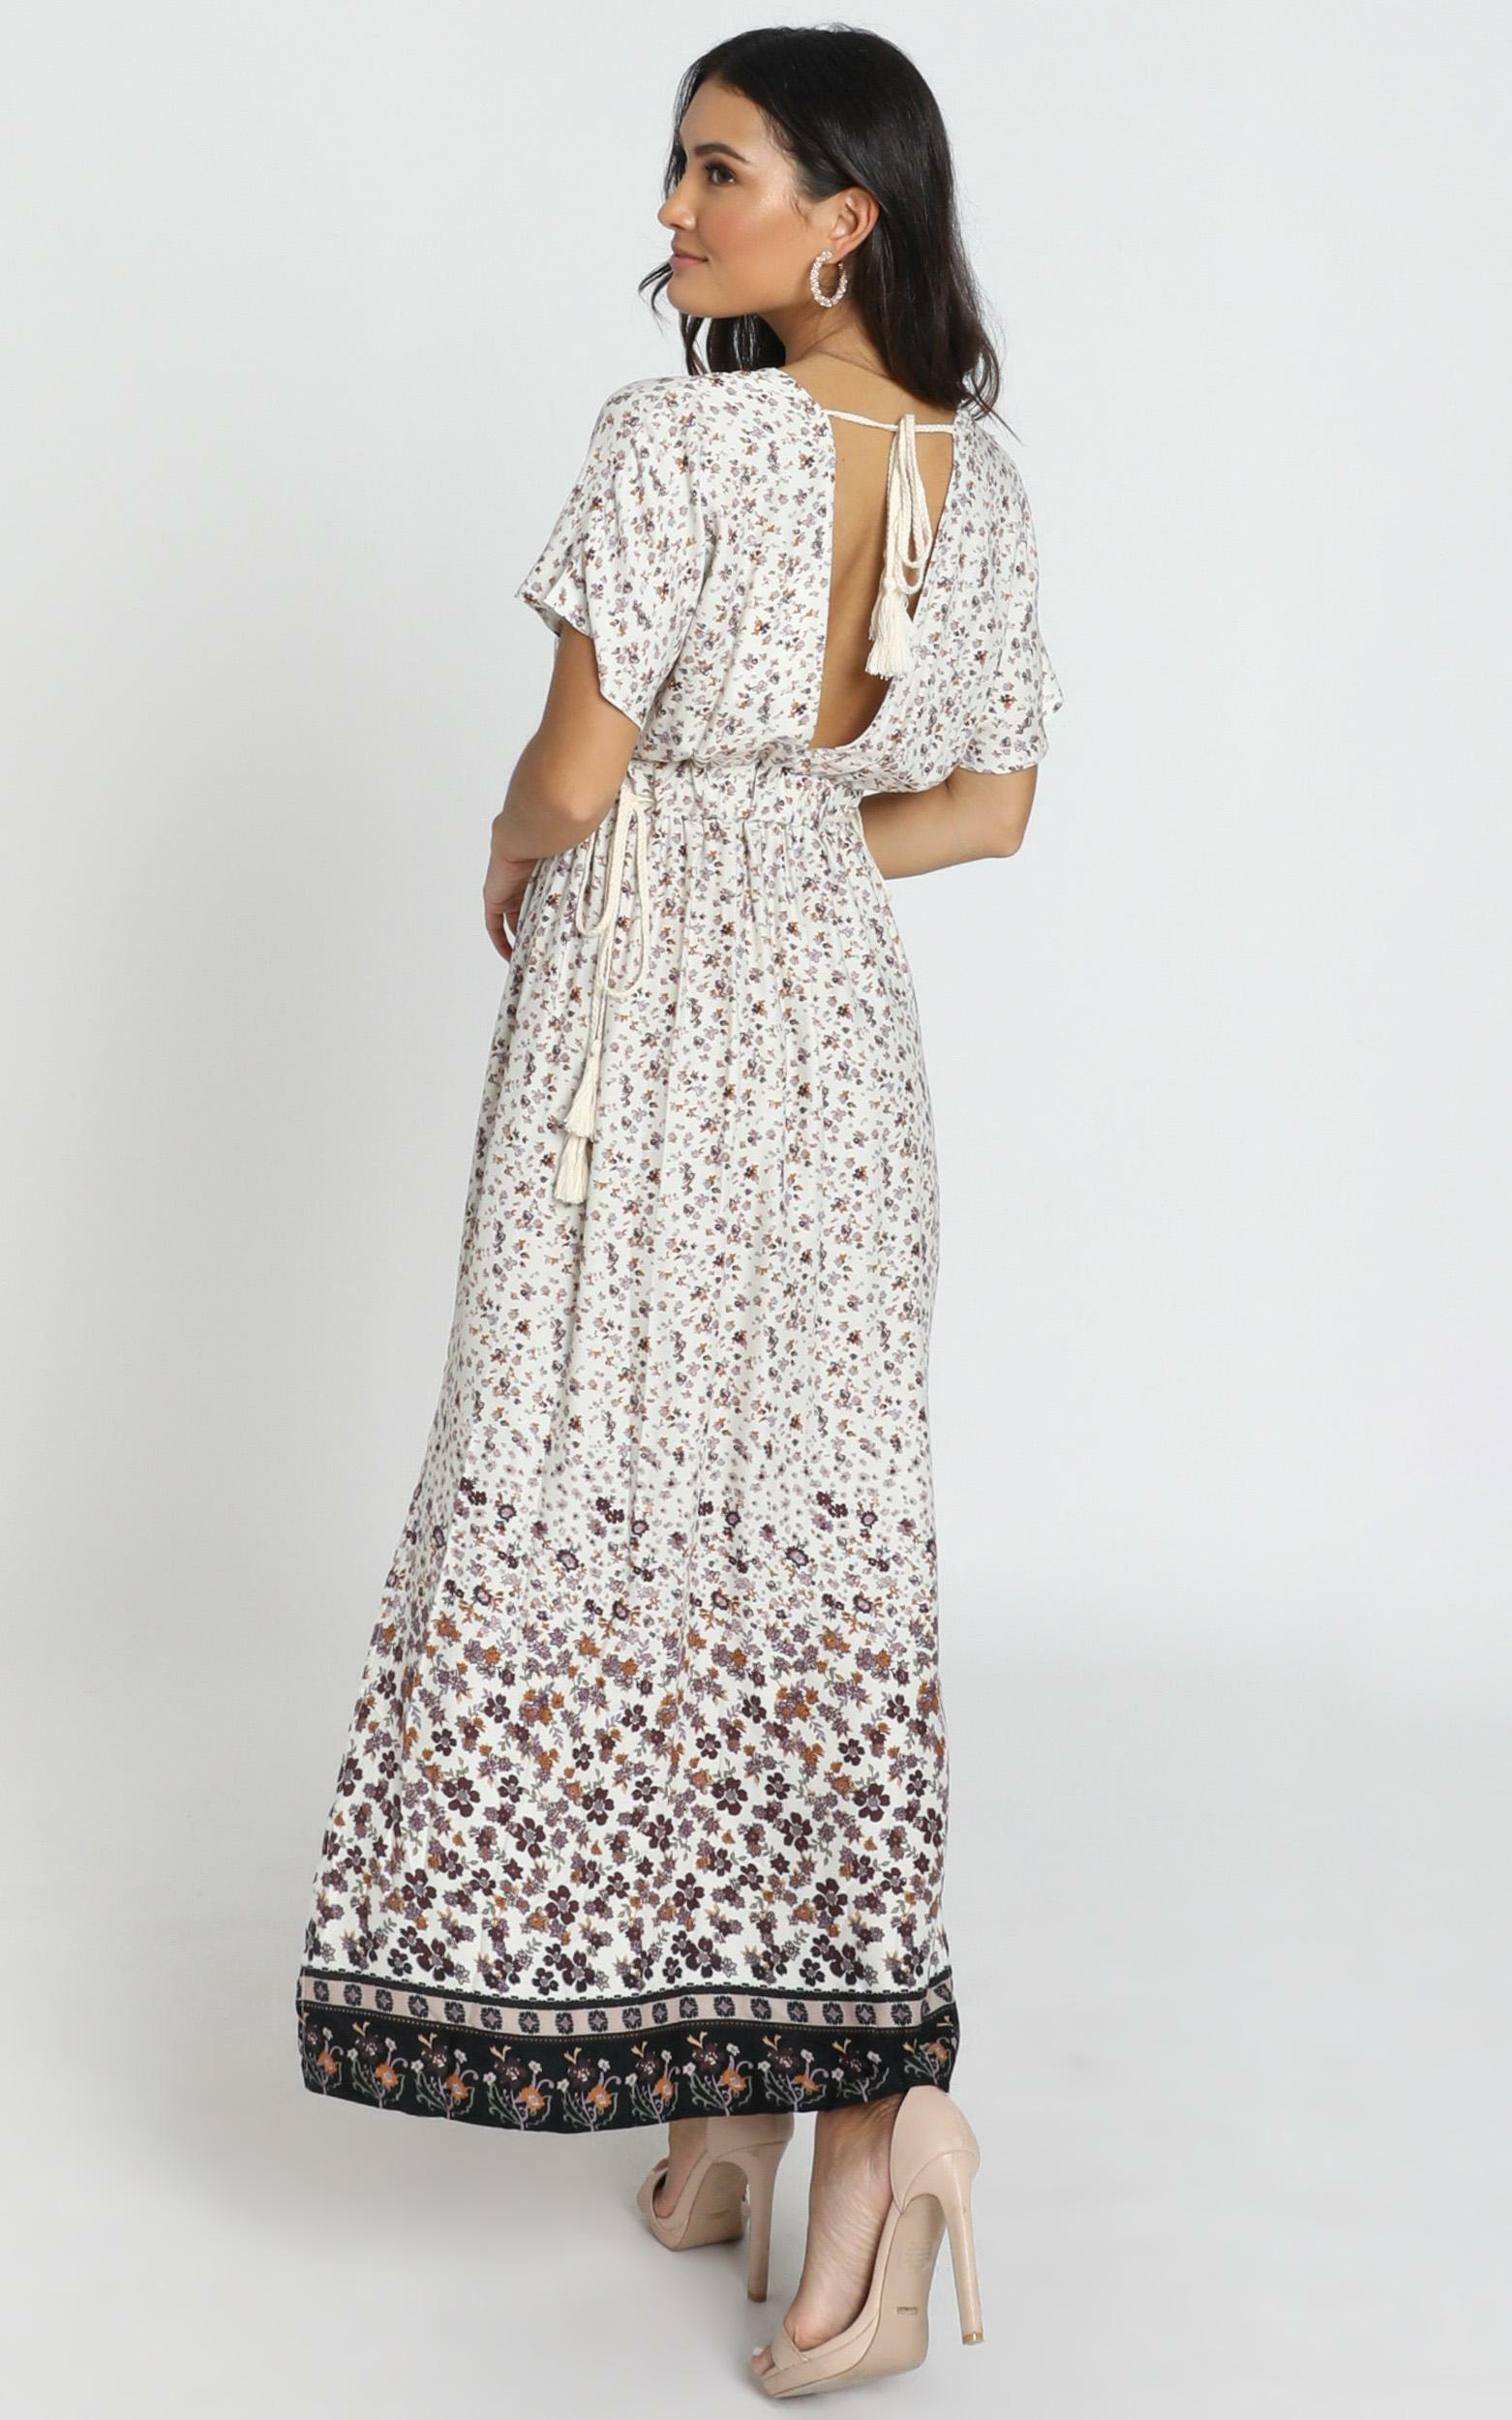 Mallory V-Neck Dress in cream floral - 6 (XS), Cream, hi-res image number null